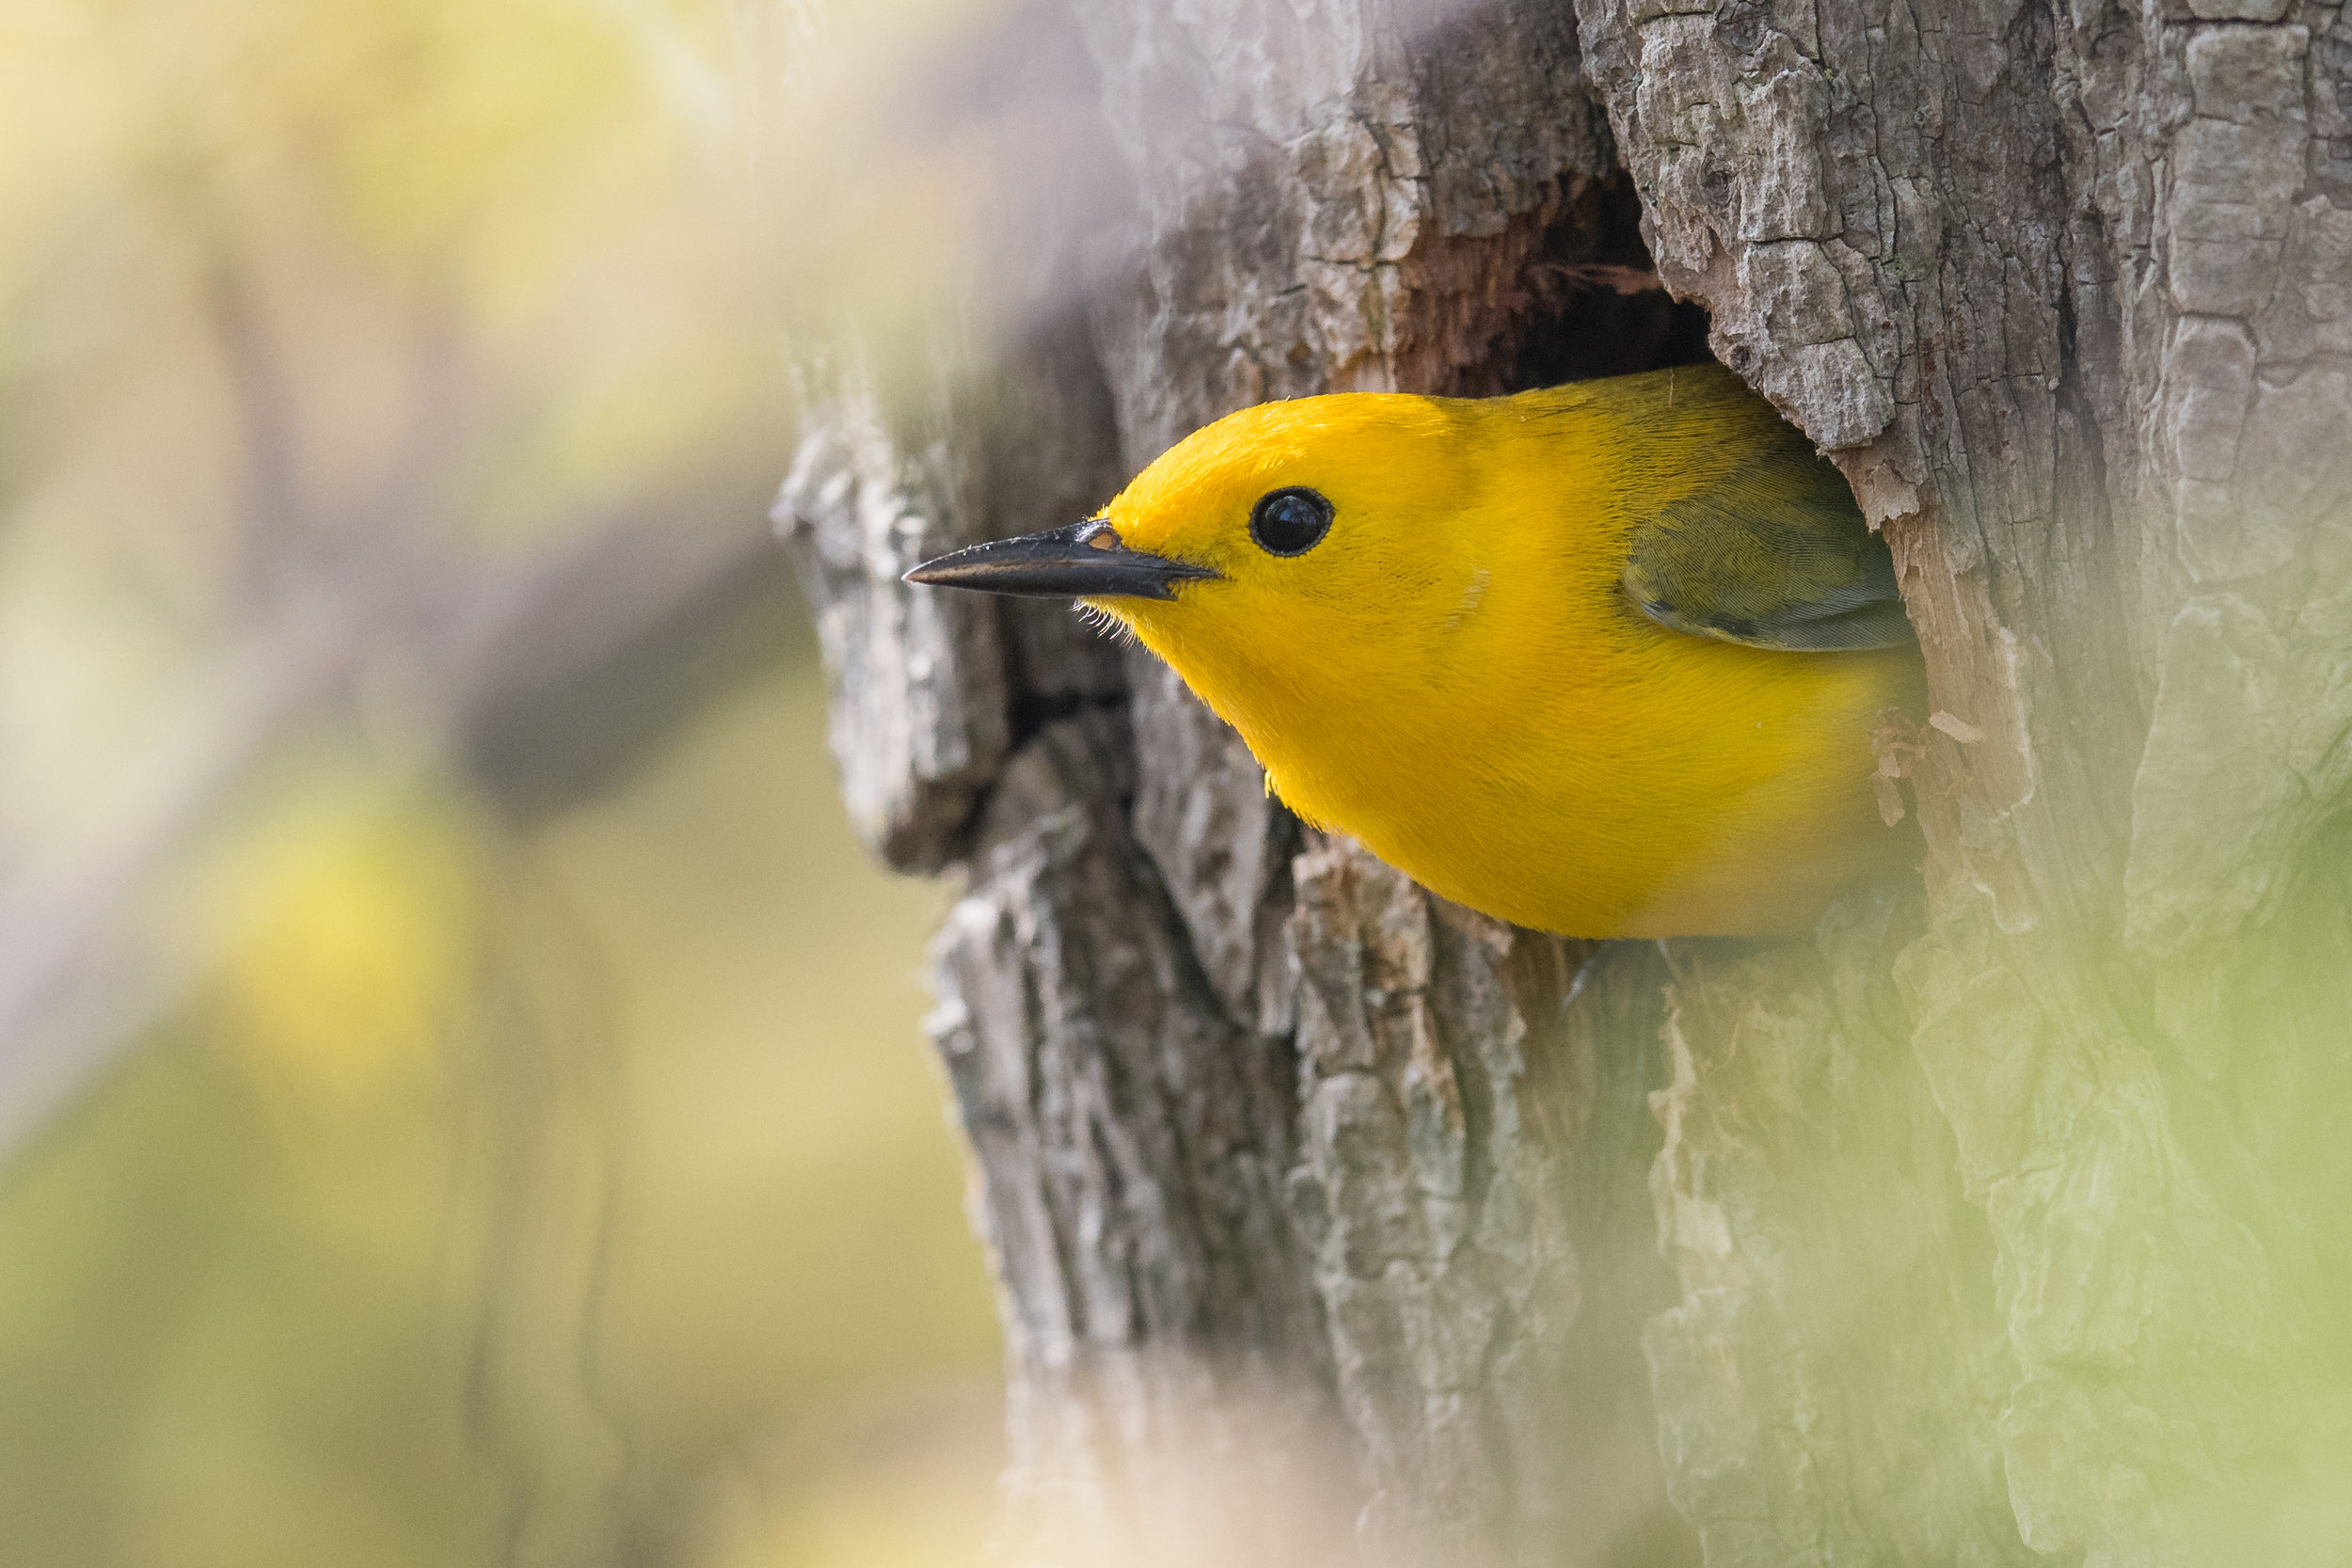 Prothonotary Warbler (Protonotaria citrea), Magee Marsh - Causeway, LUC (OH)